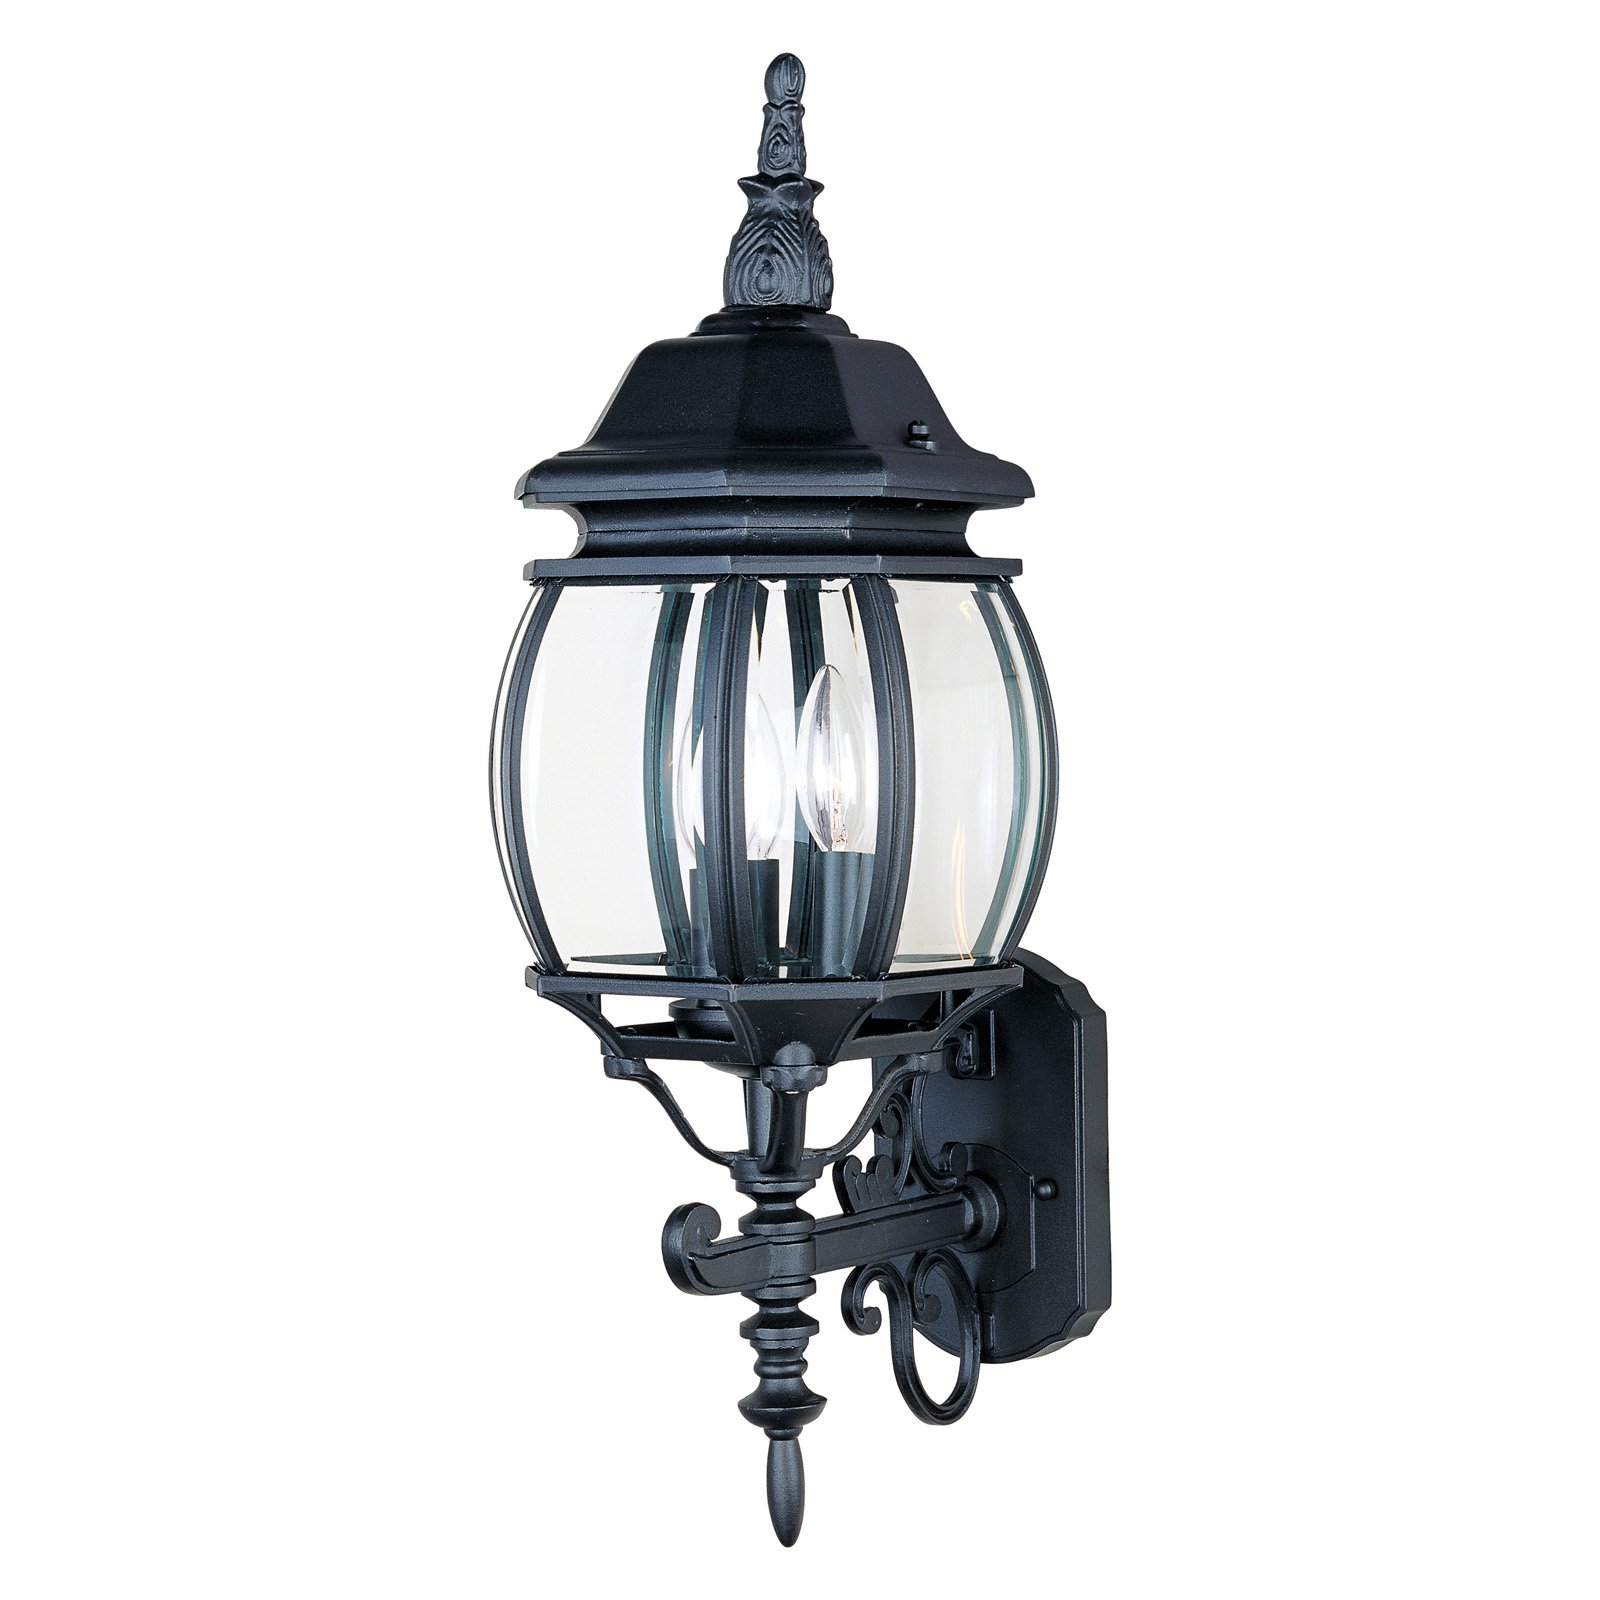 Maxim Crown Hill Outdoor Wall Lantern - 23.5H in.